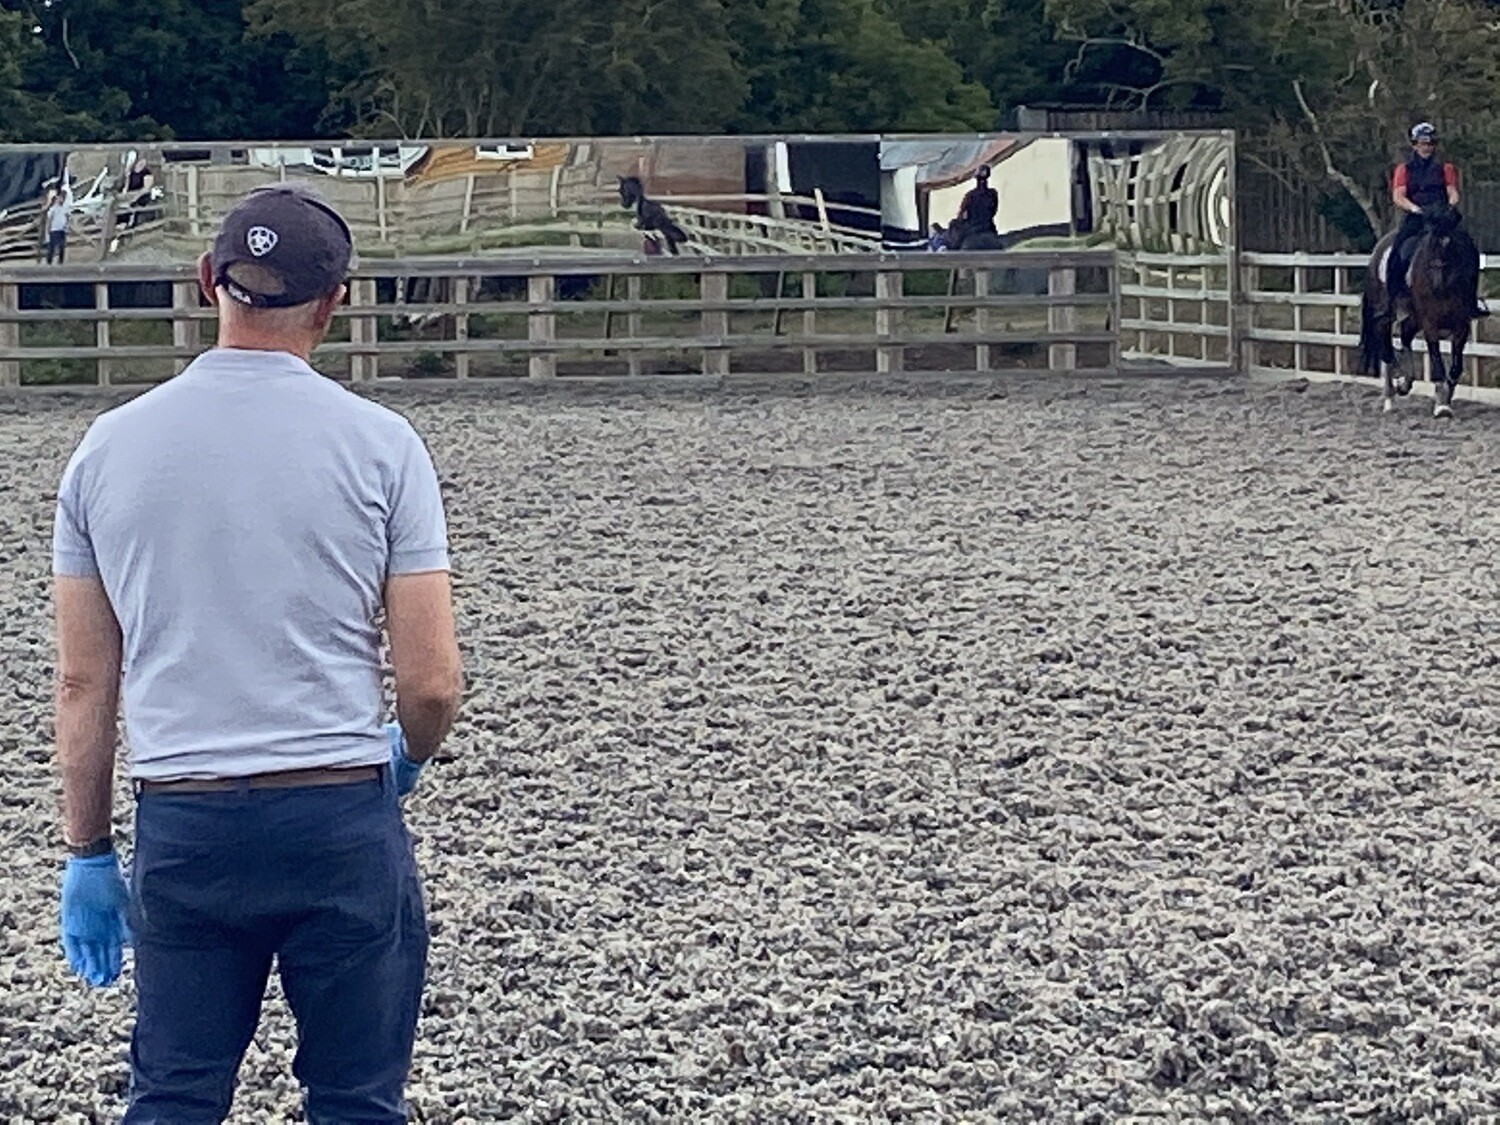 Testt Rider Symmetry Mounted Follow Up Assessment : 30 Minutes : Hosted By Louisa Cuomo At Deepdene Stabes, Kent : 28th September 2020 (Client Must Have Had A Previous Assessment With Andy)